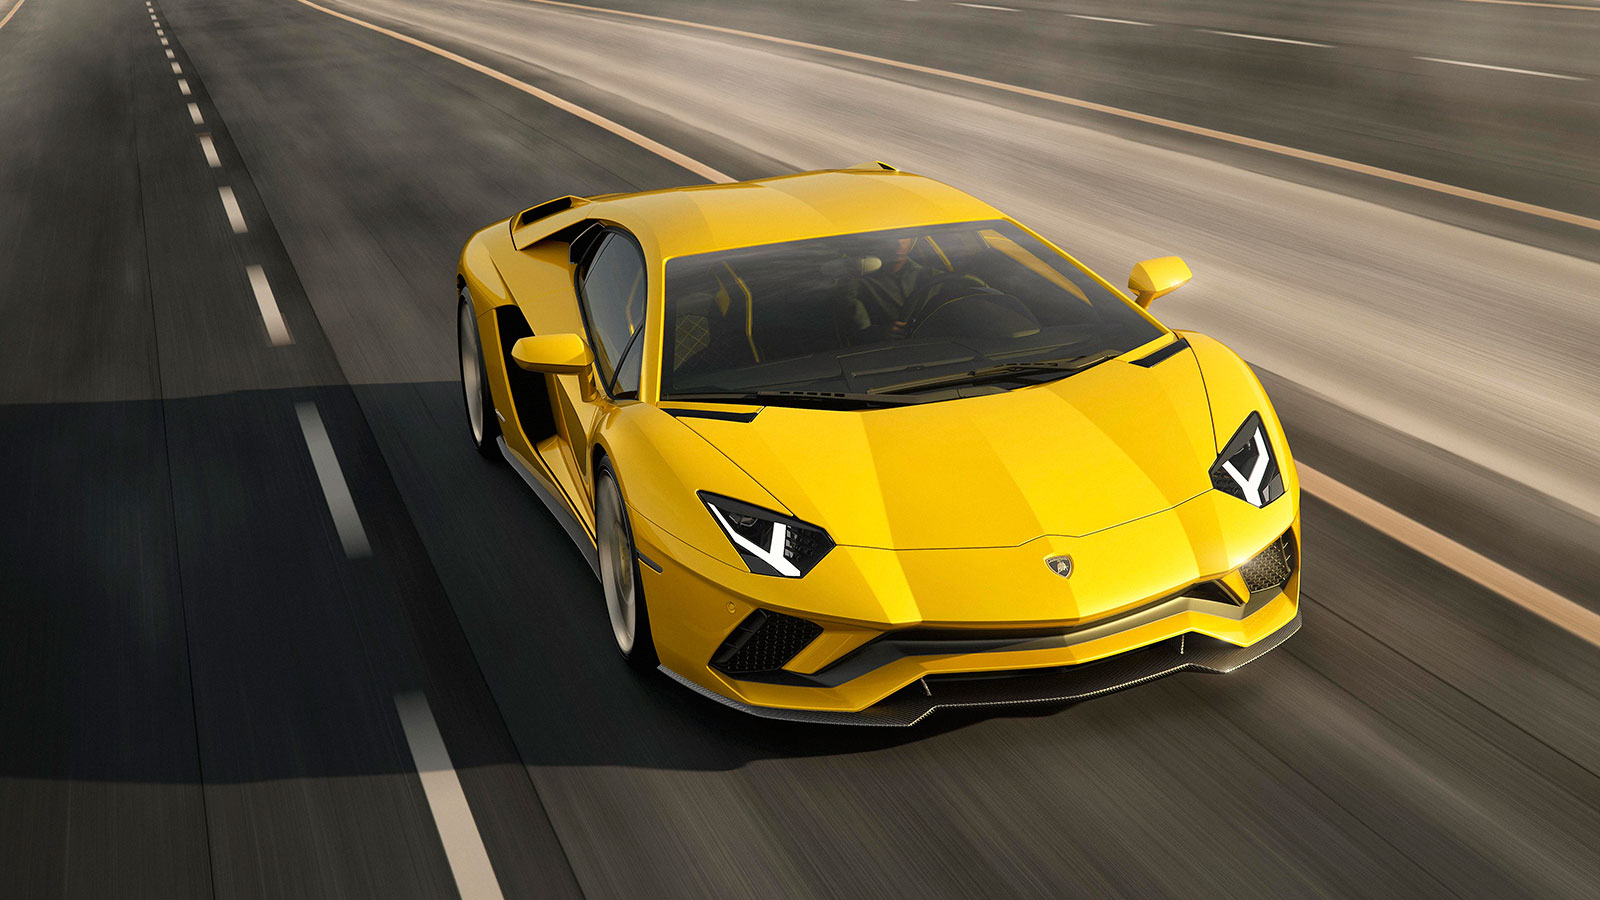 Lamborghini Aventador S Coupe - The Icon Reborn image 37